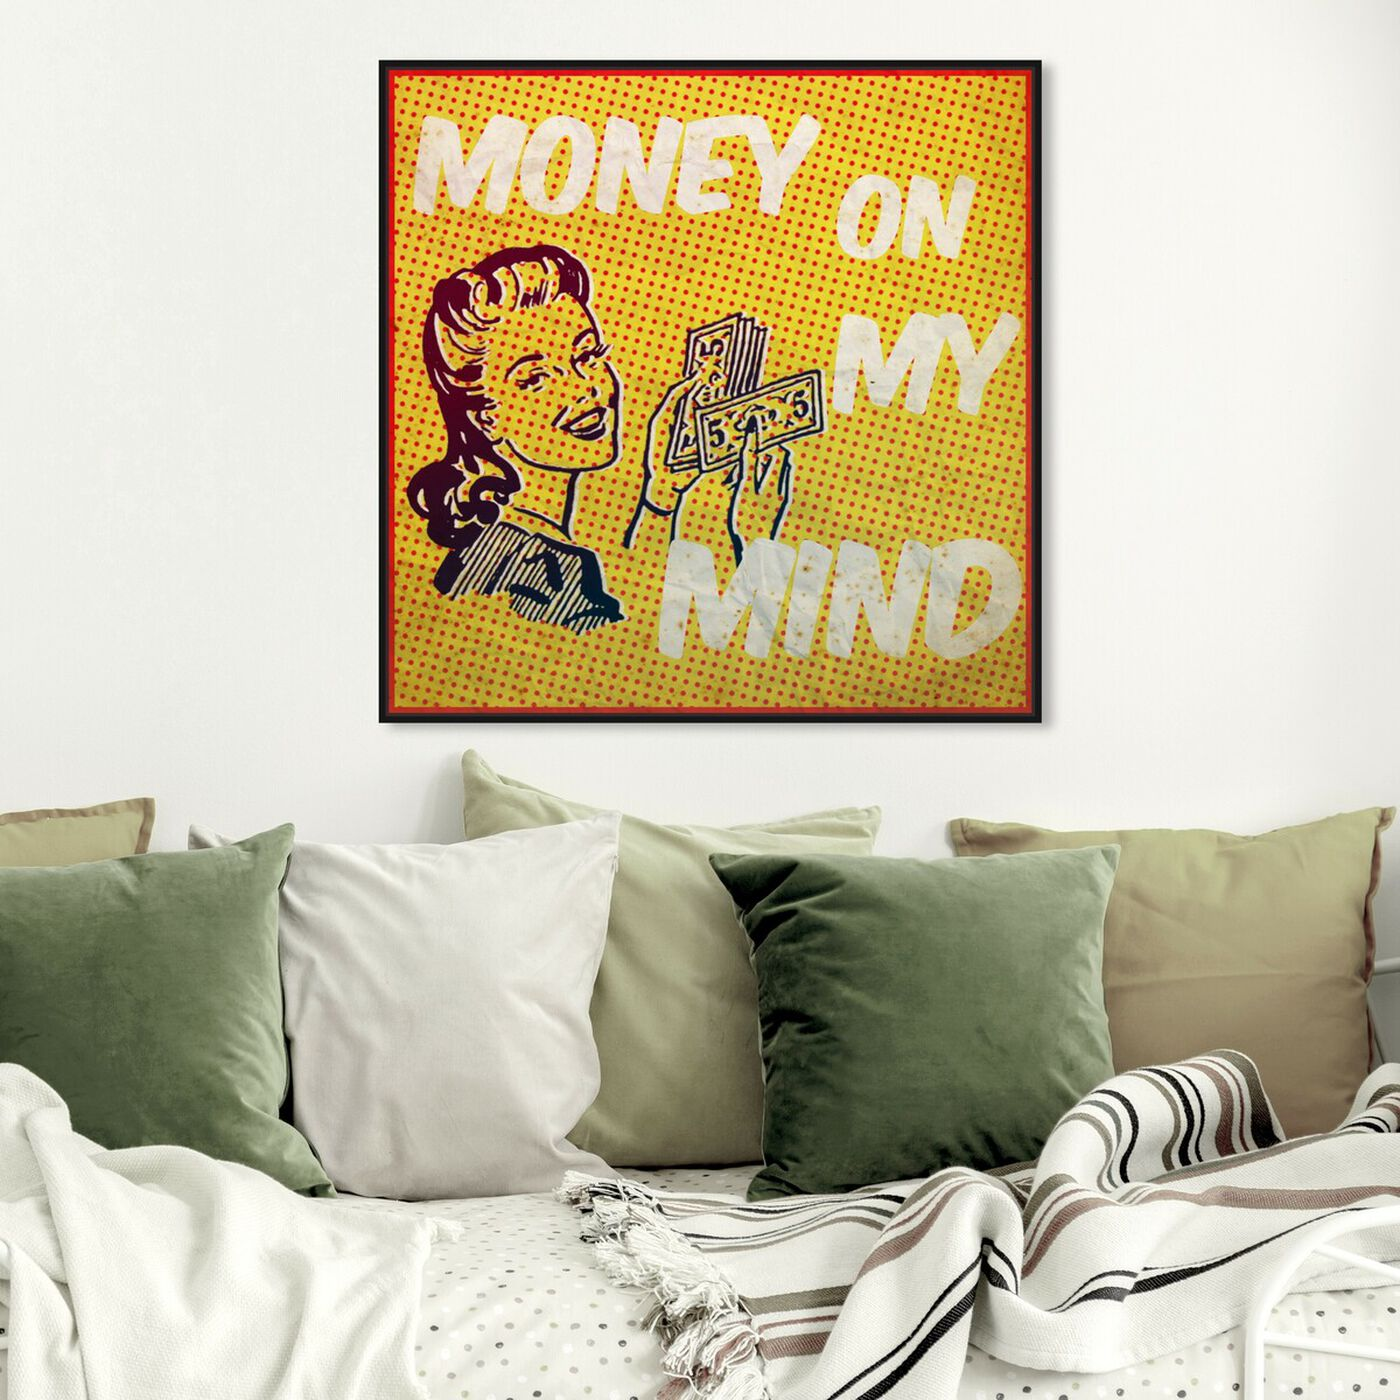 Hanging view of Money on My Mind featuring advertising and comics art.